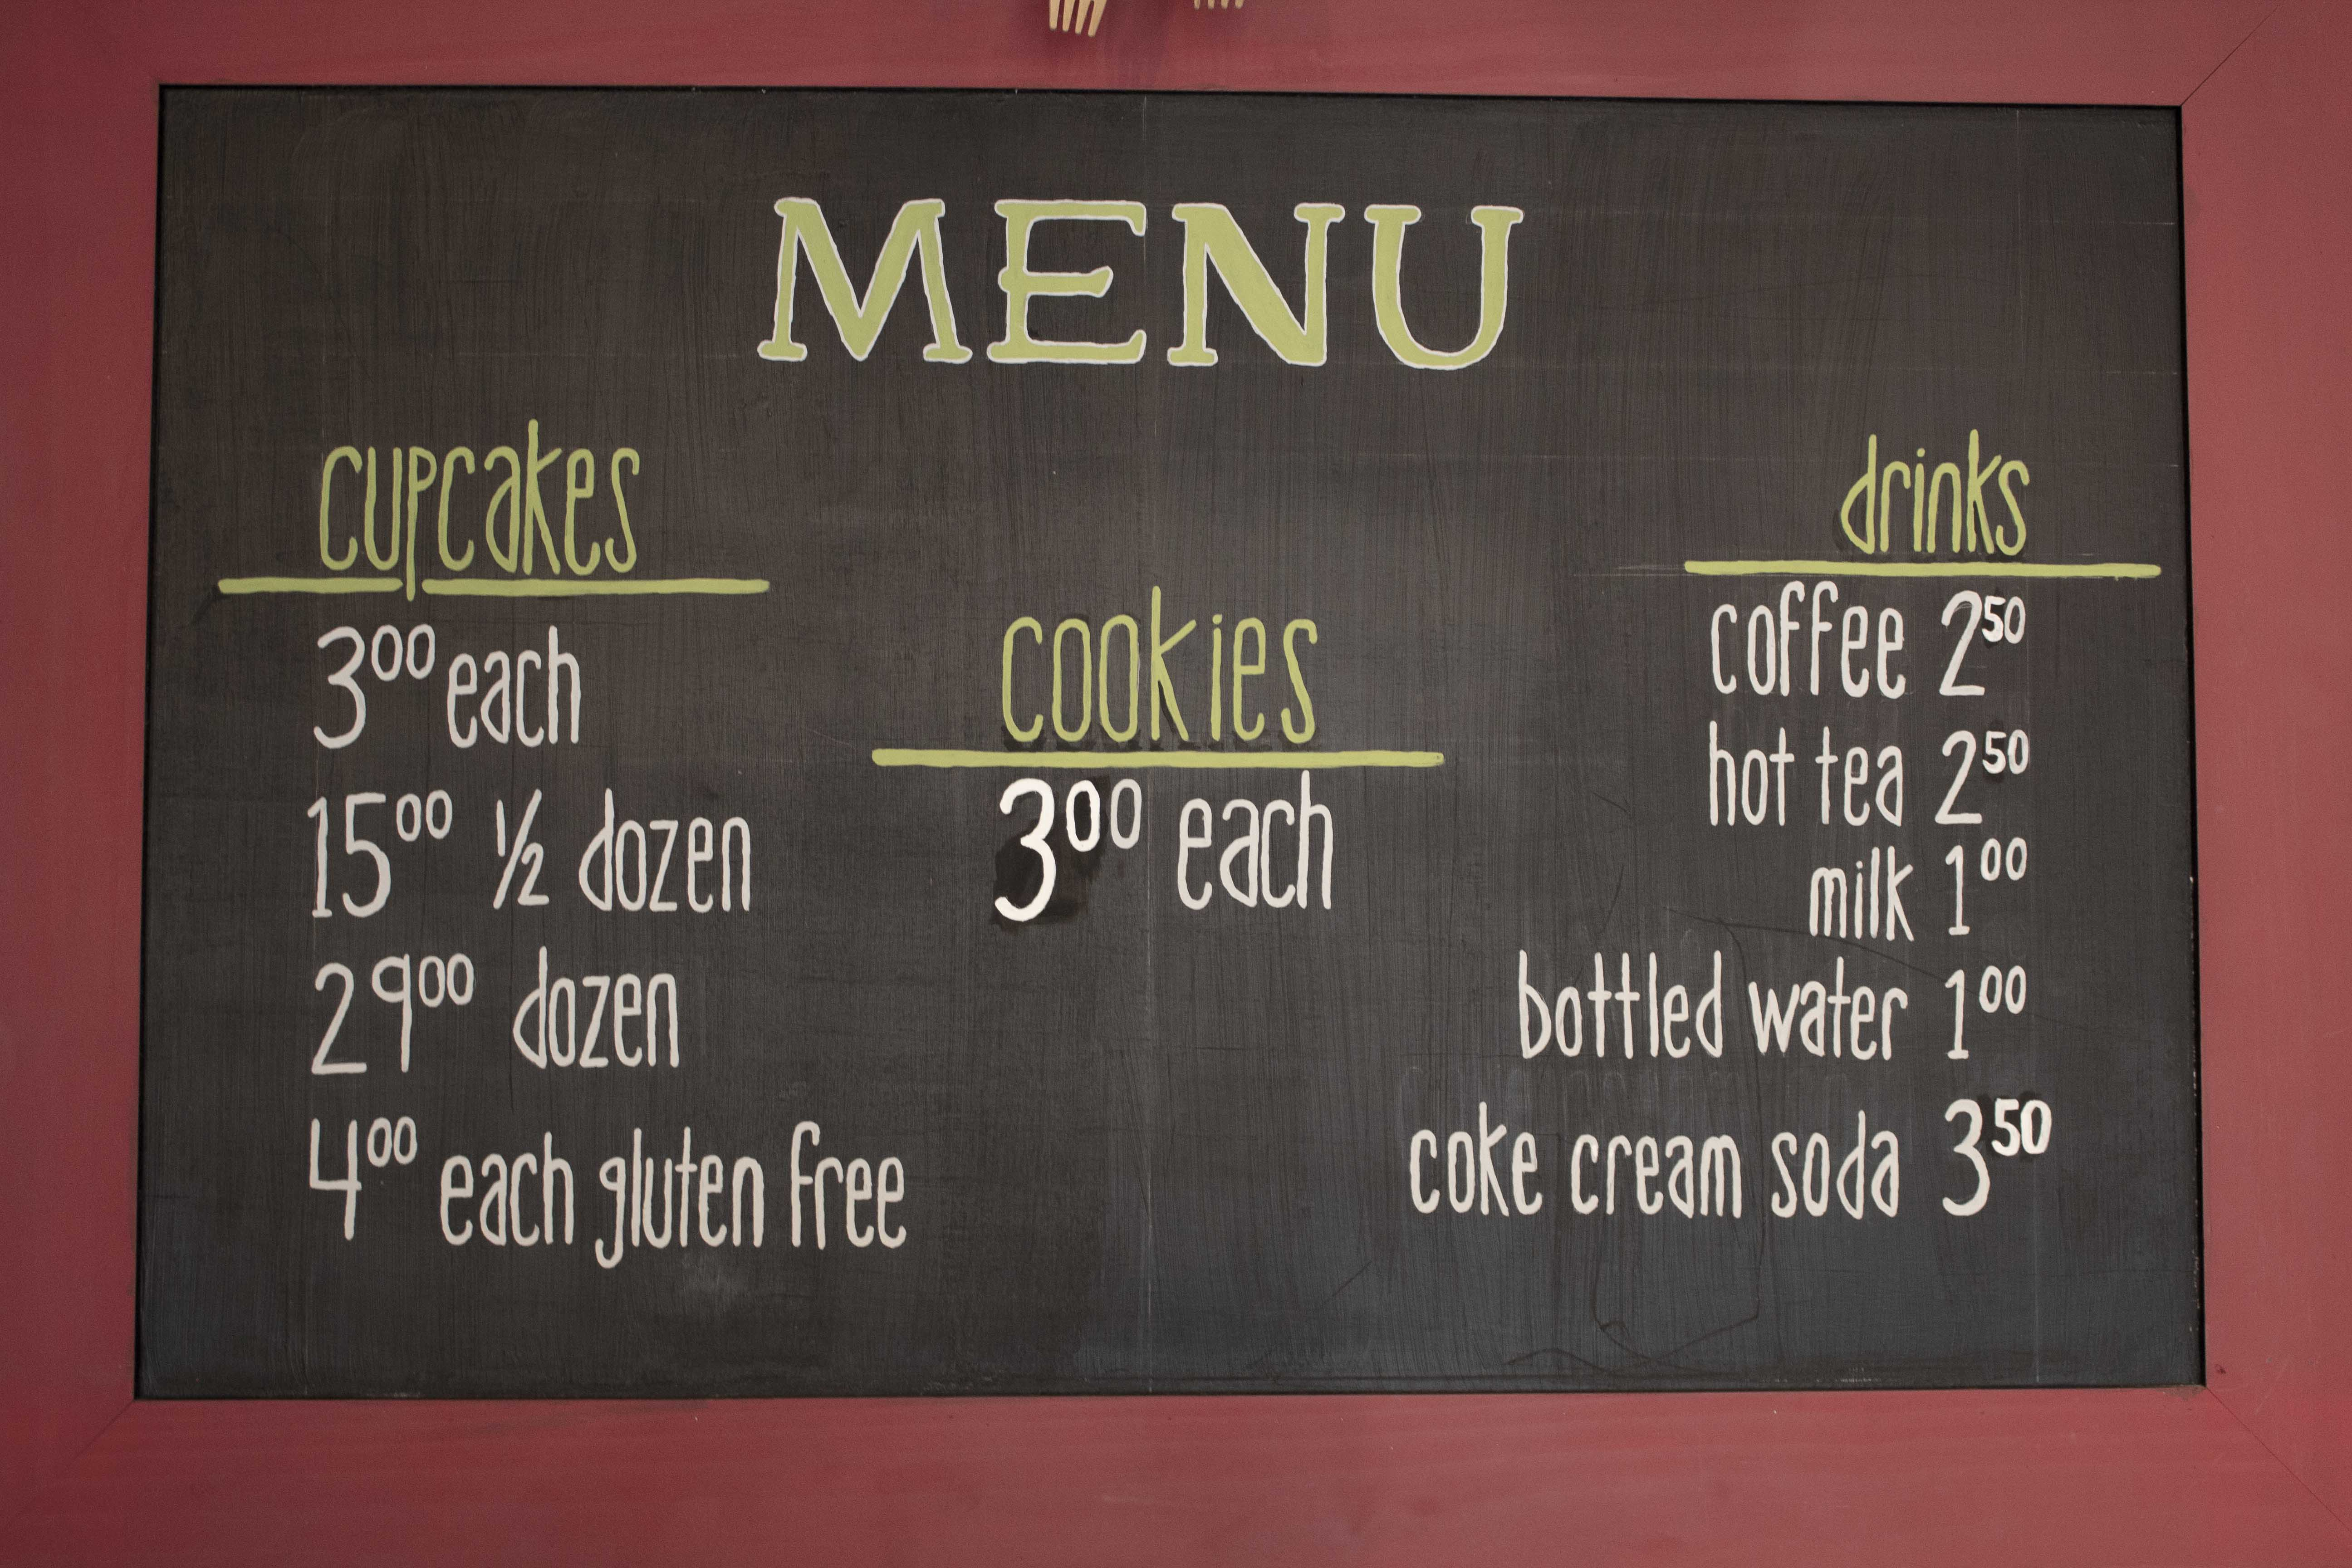 picture of the menu in the storefront